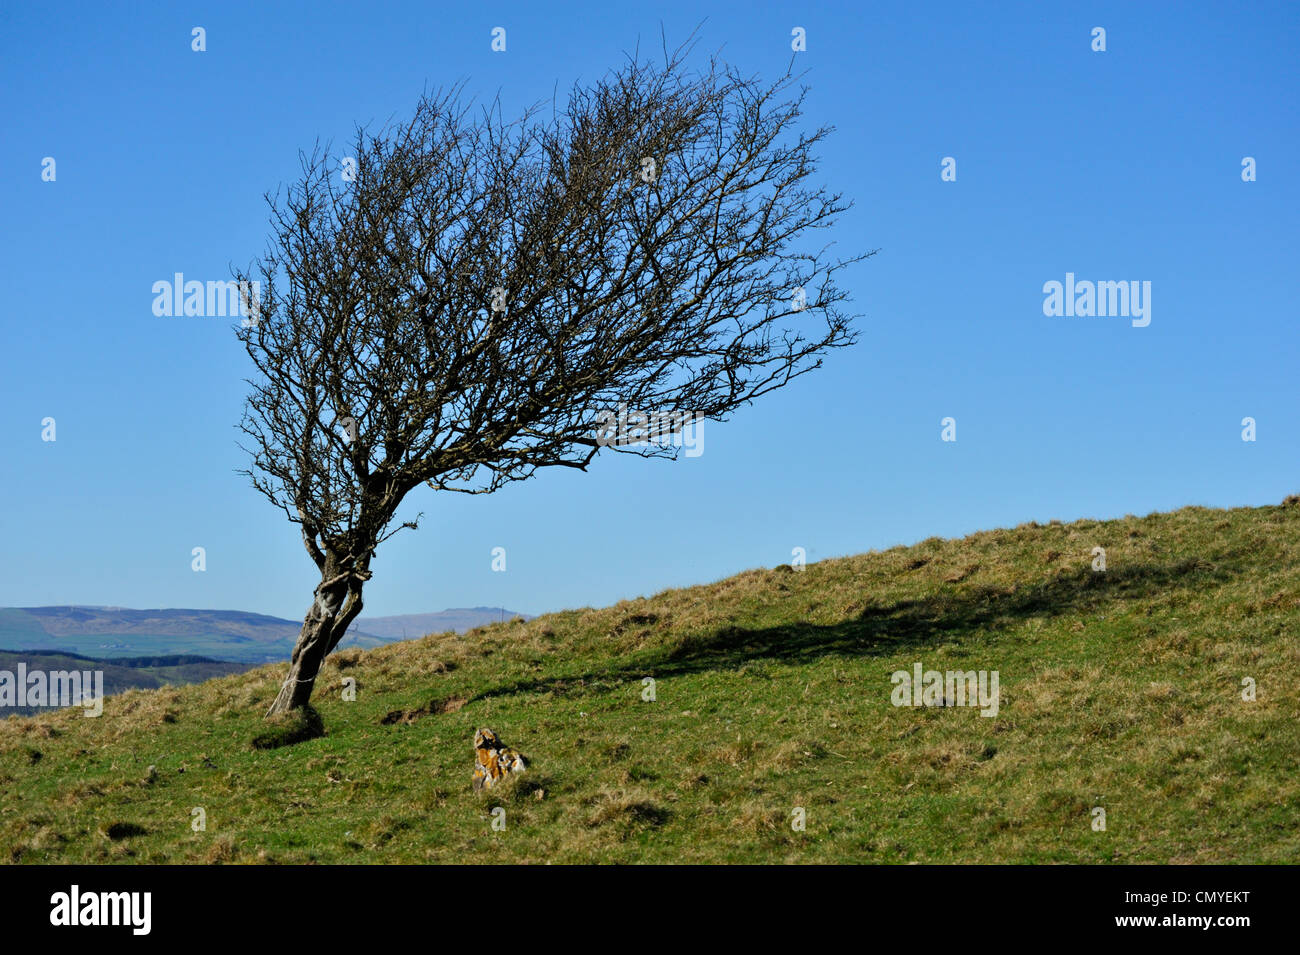 Wind distorted hawthorn tree. Hampsfell. Grange-over-Sands, Cumbria, England, United Kingdom, Europe. - Stock Image